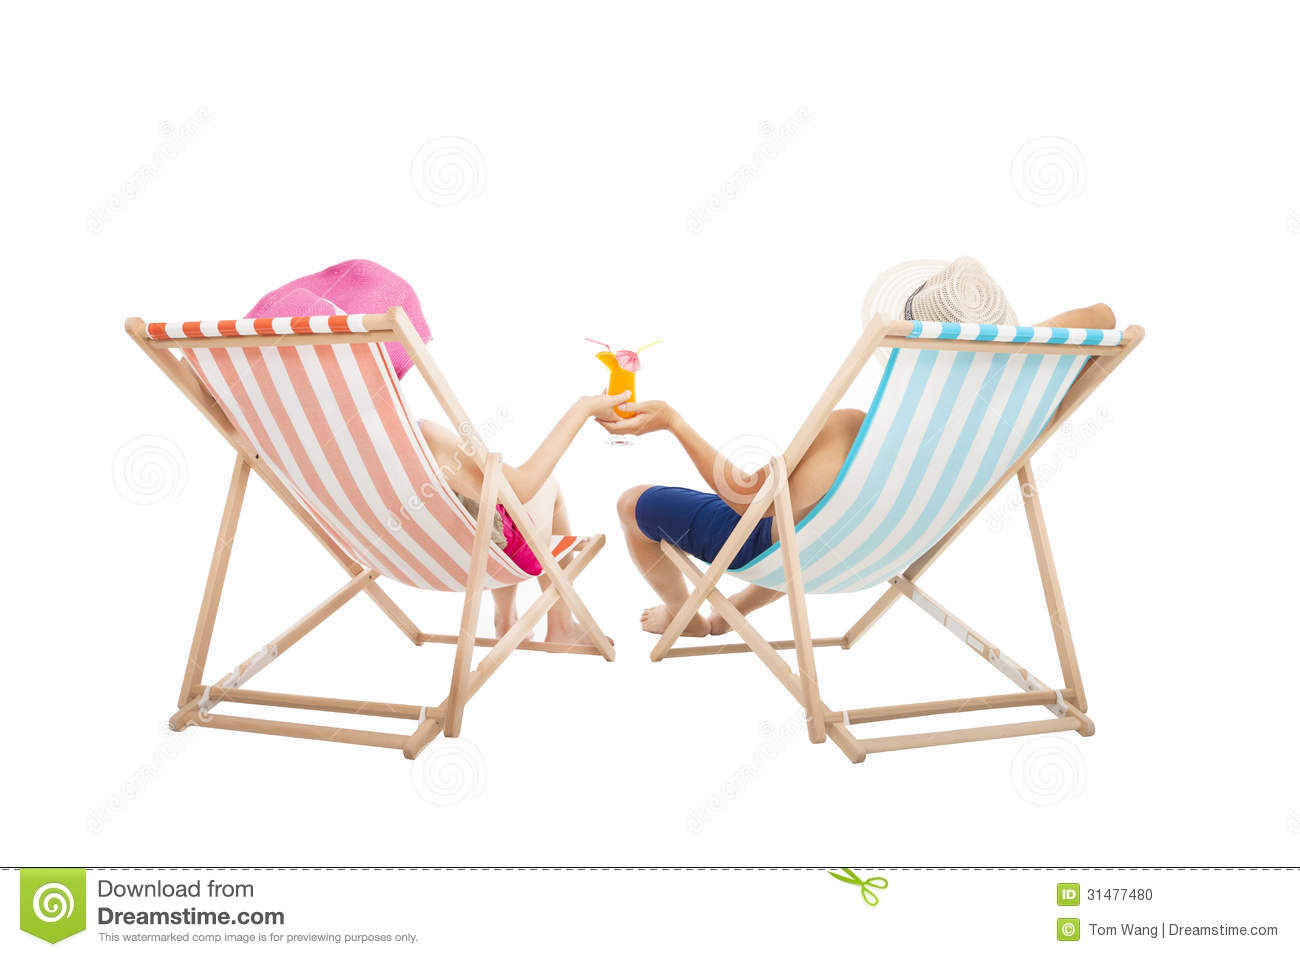 Kopel clipart beach Sitting On Sitting Download Clipart